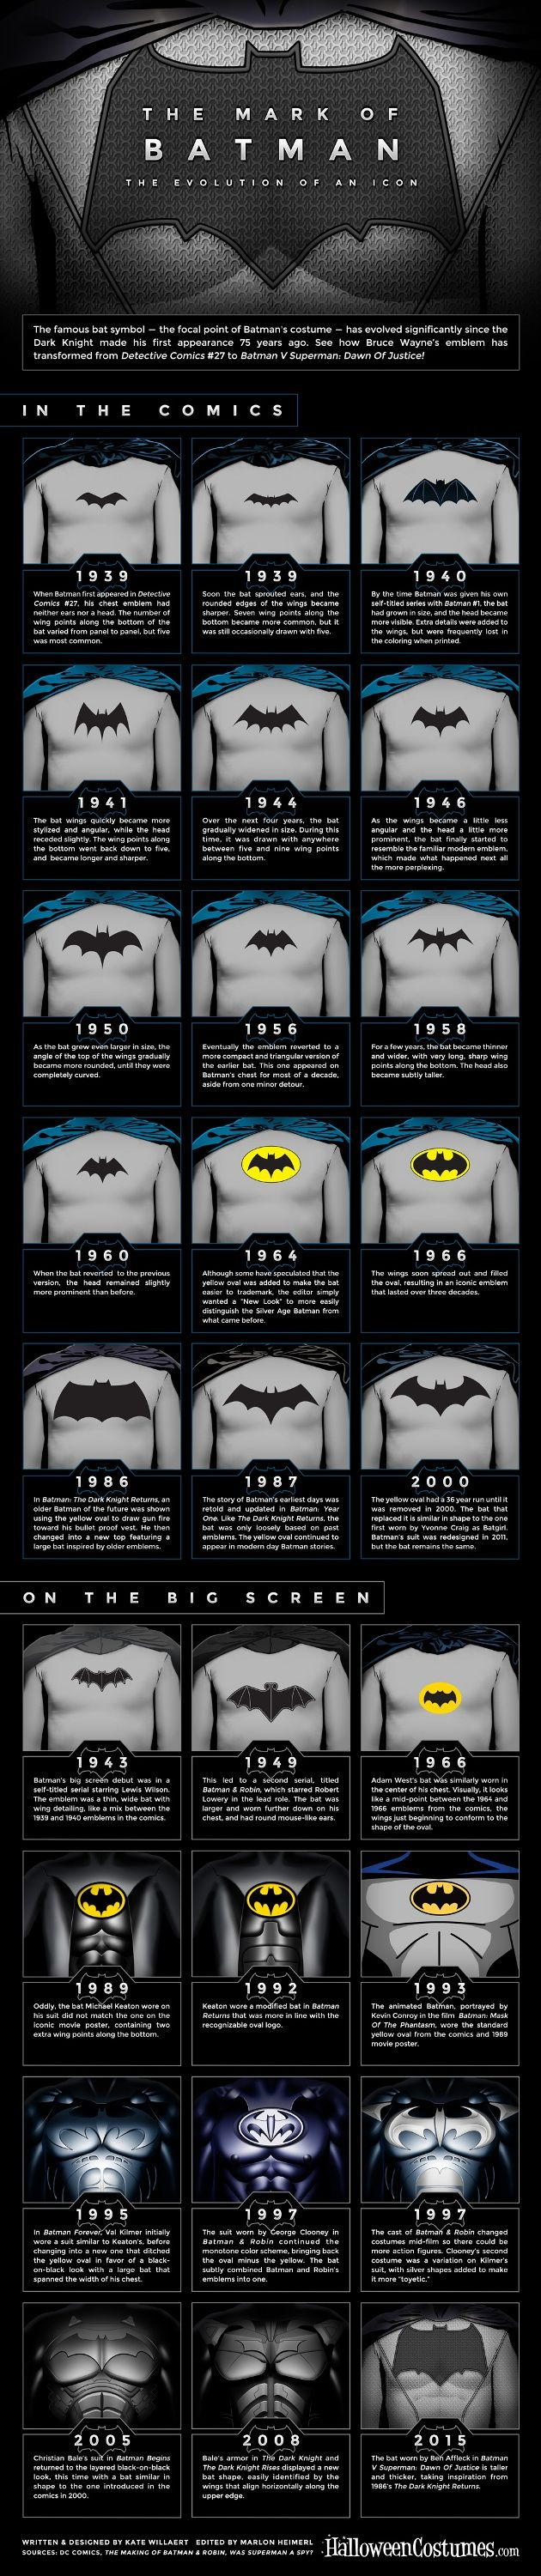 The Mark of Batman: The evolution of Batman's Bat-emblems over the years.